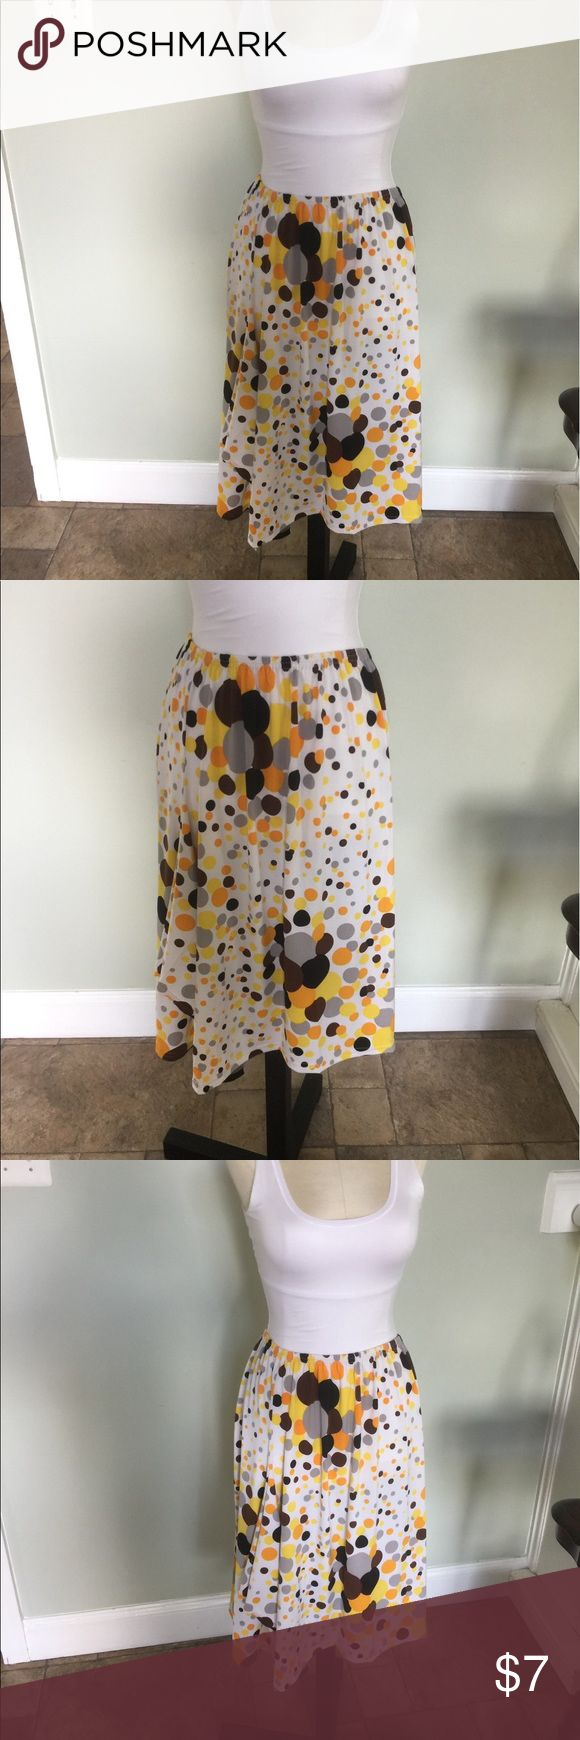 New Handmade Dancers Skirt Sz M Skirt was made by a seamstress friend of mine.She made these for the dance schools near me and is now retiring and getting rid of her stock.New condition.Elastic waist. handmade Skirts Midi